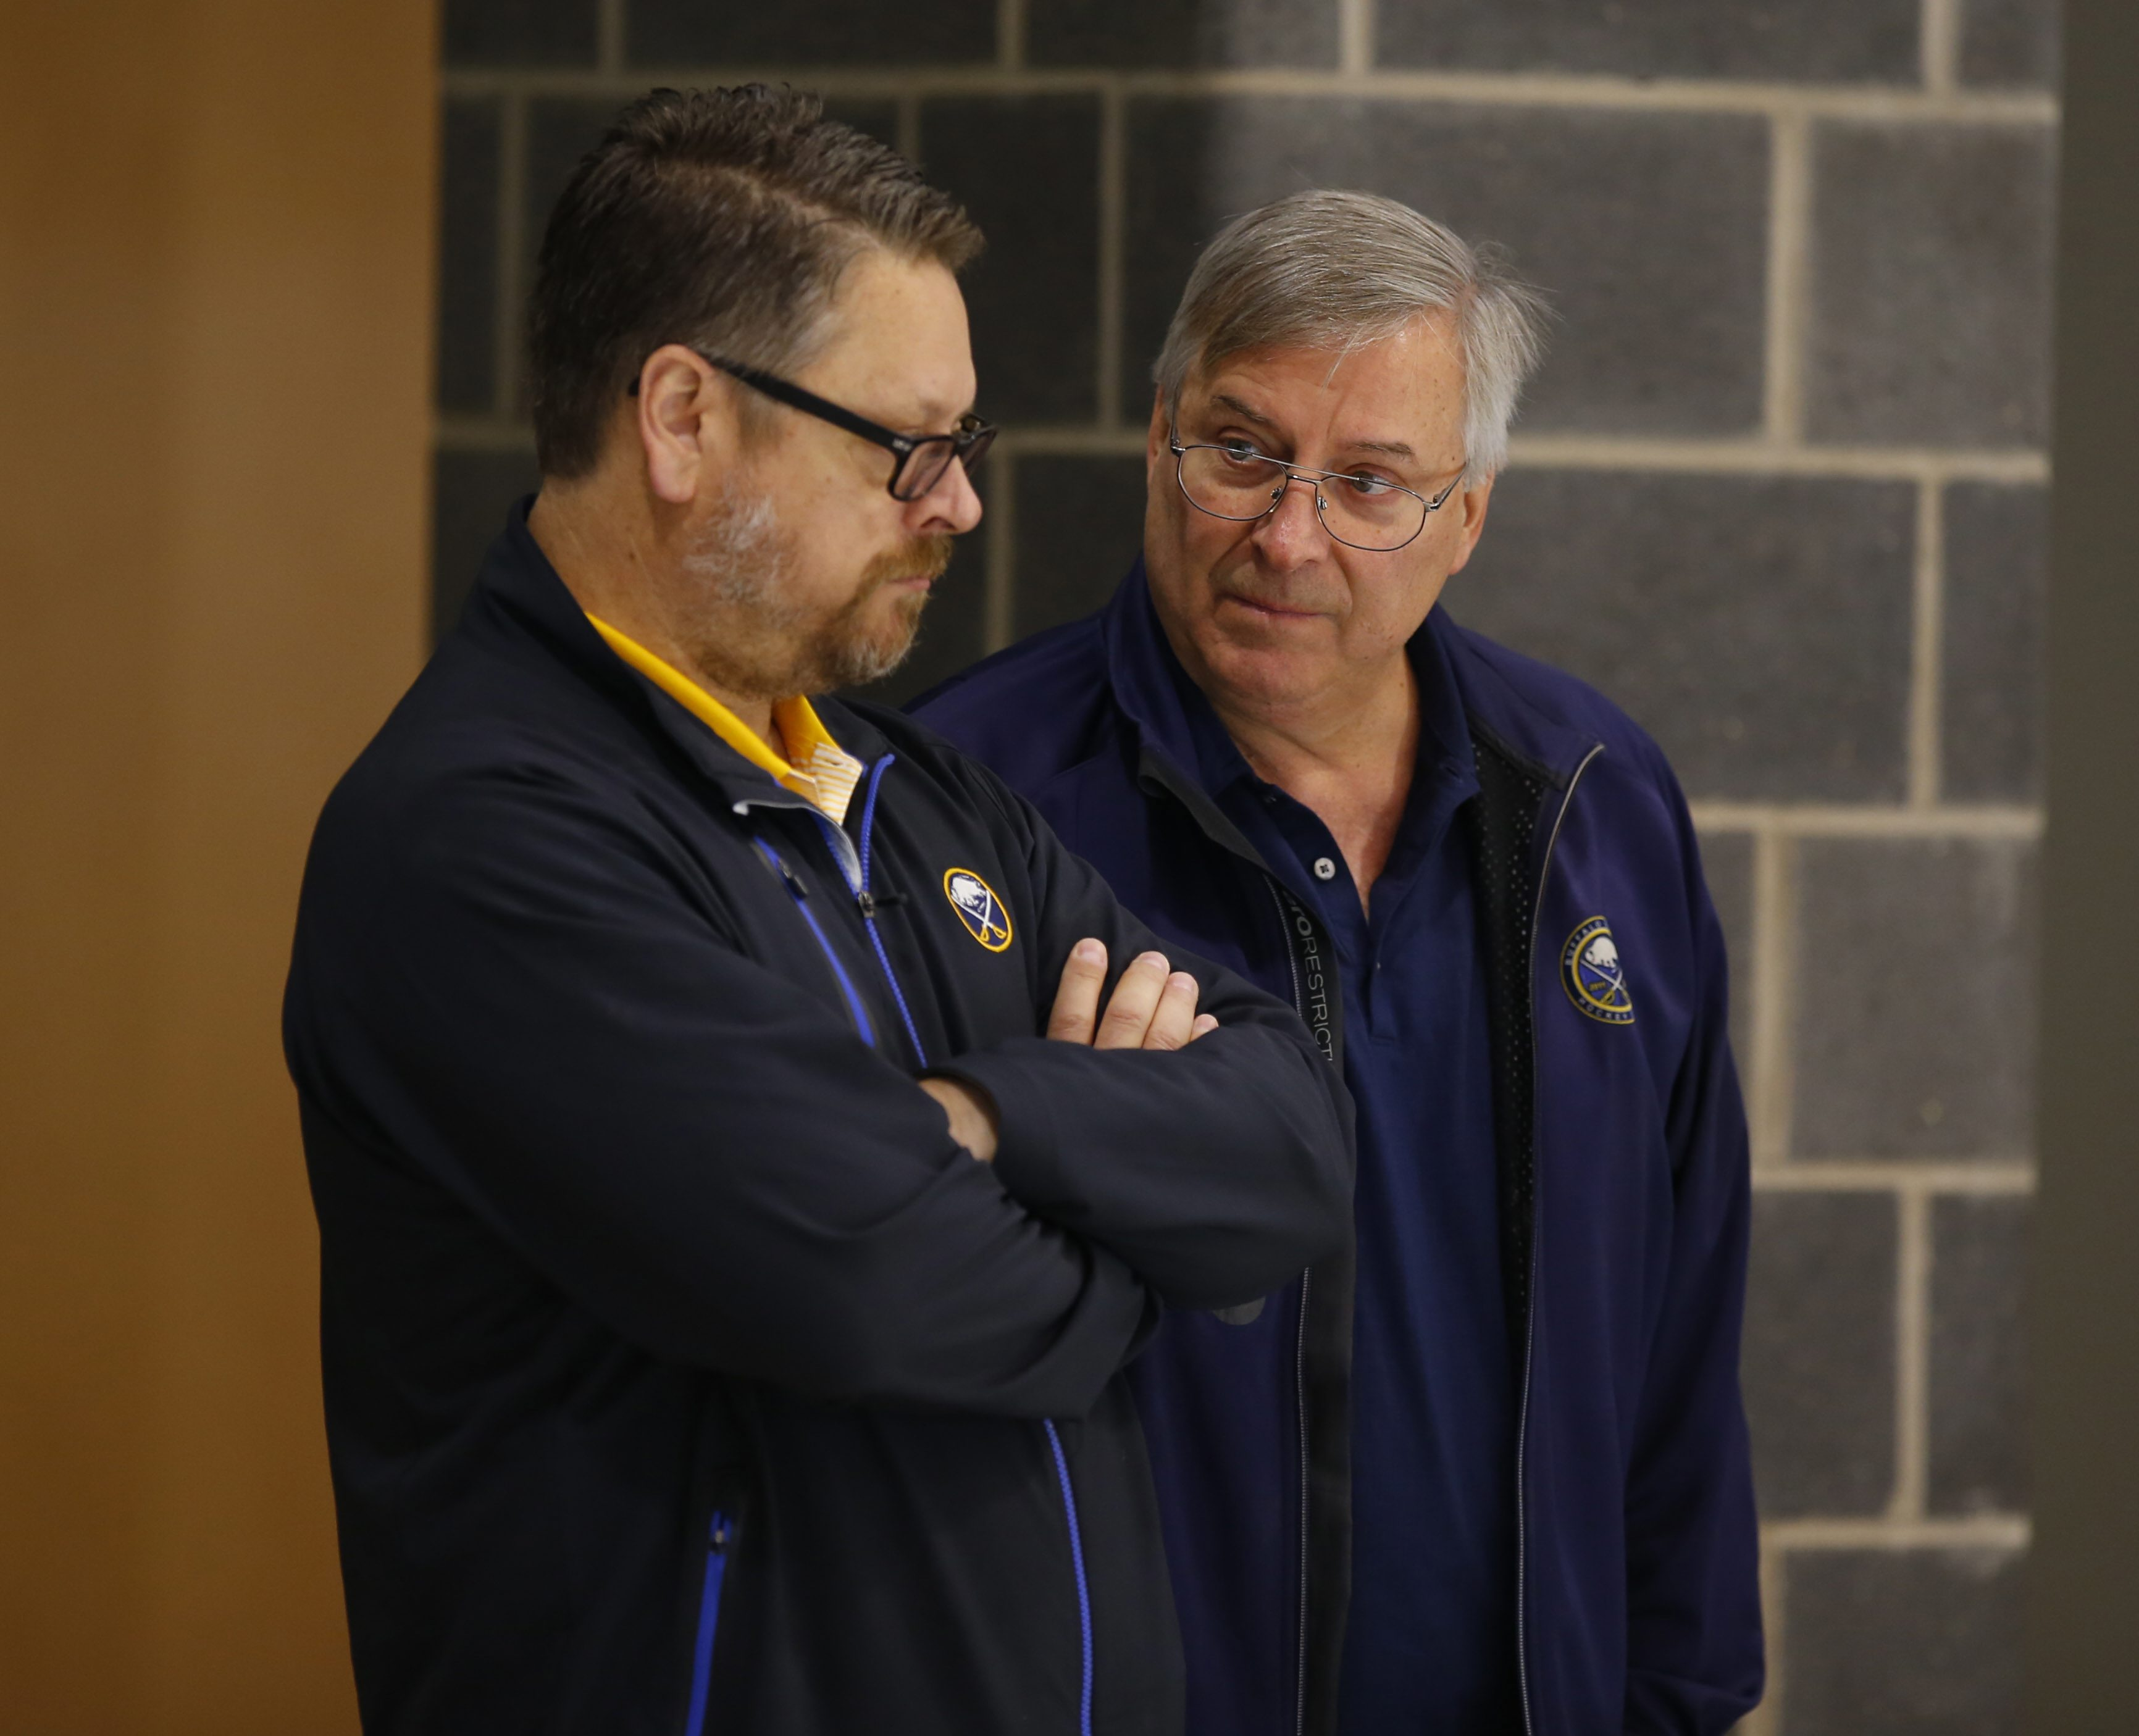 Buffalo Sabres owner Terry Pegula talks with General Manager Tim Murray during development camp at the HarborCenter on Tuesday, July 12, 2016. (Harry Scull Jr./Buffalo News file photo)